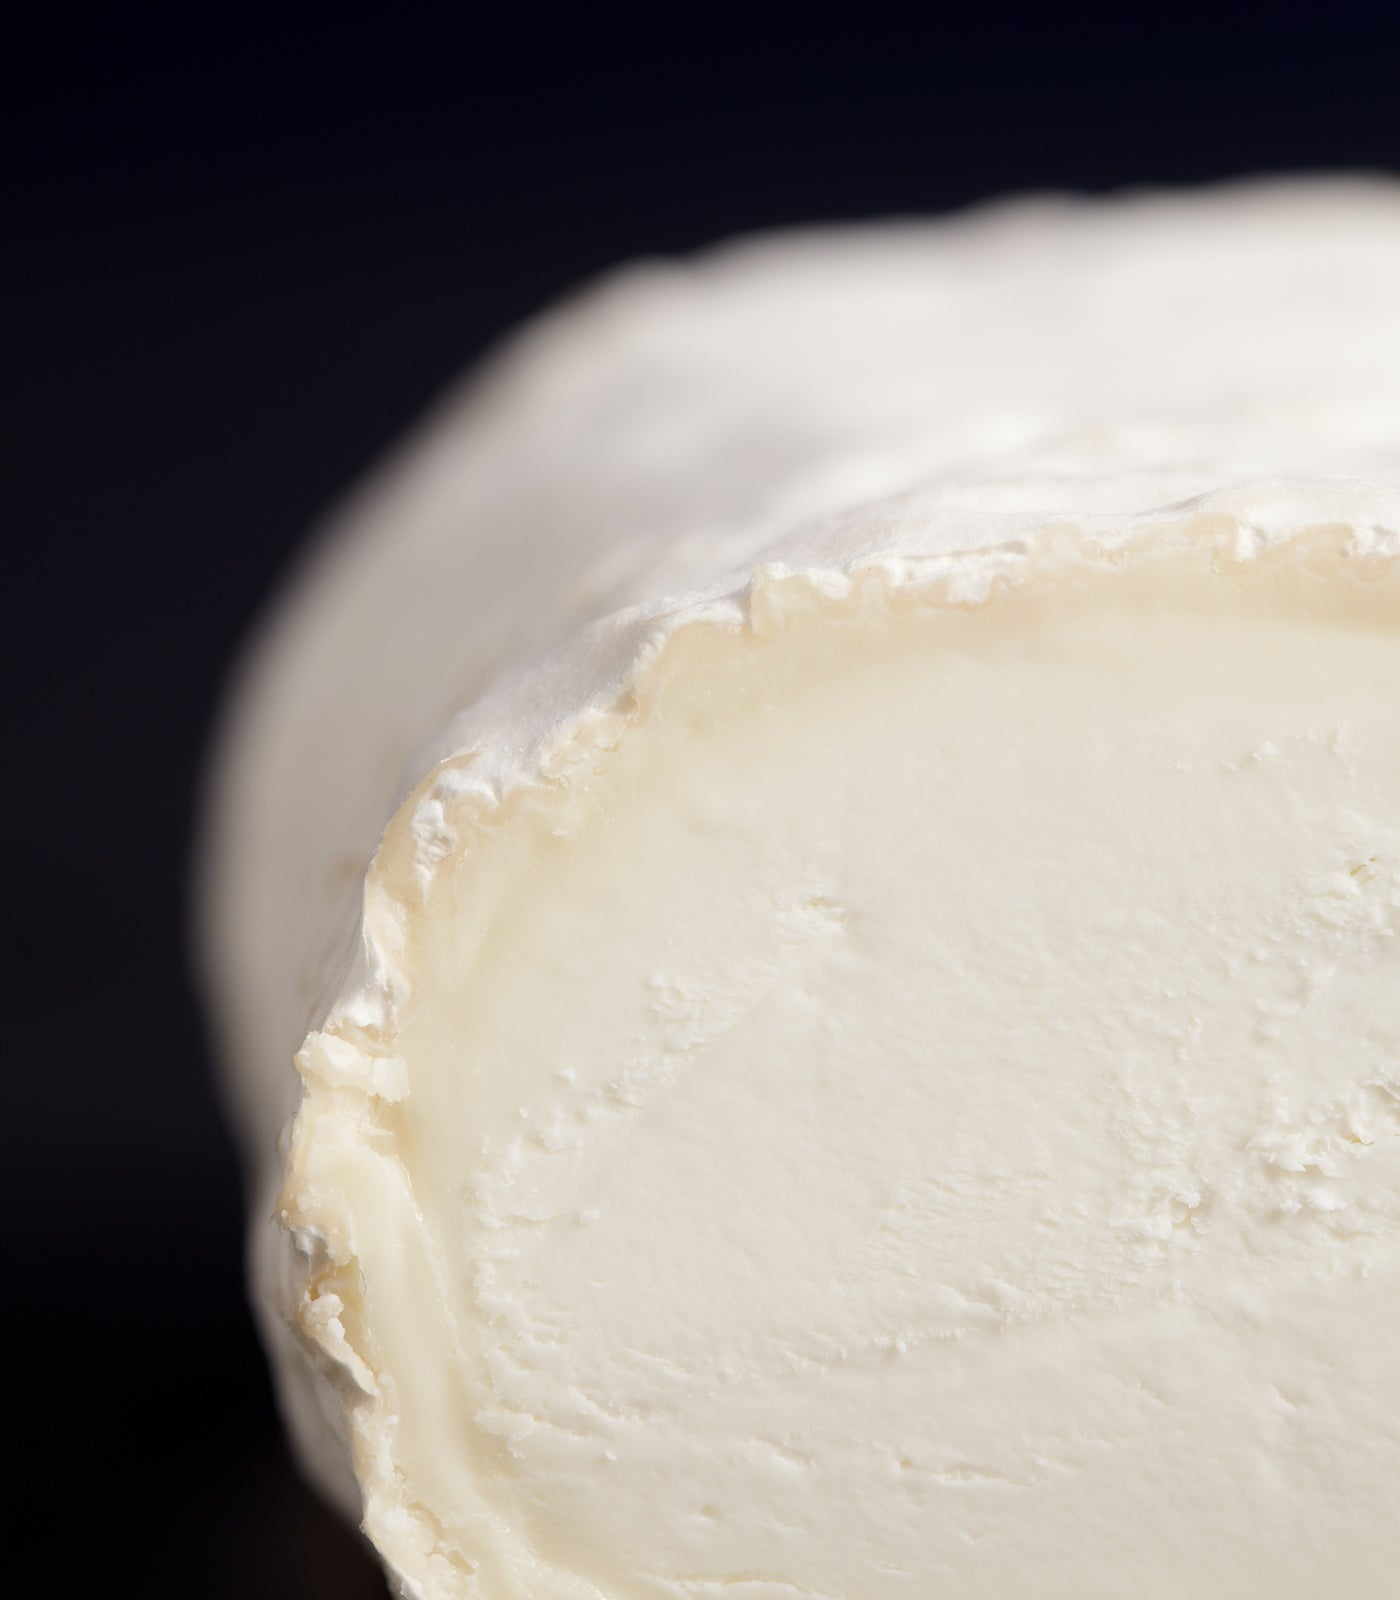 Close up of a cut log-shaped Ragstone goat's milk cheese with delicate smooth white rind and a dense paste